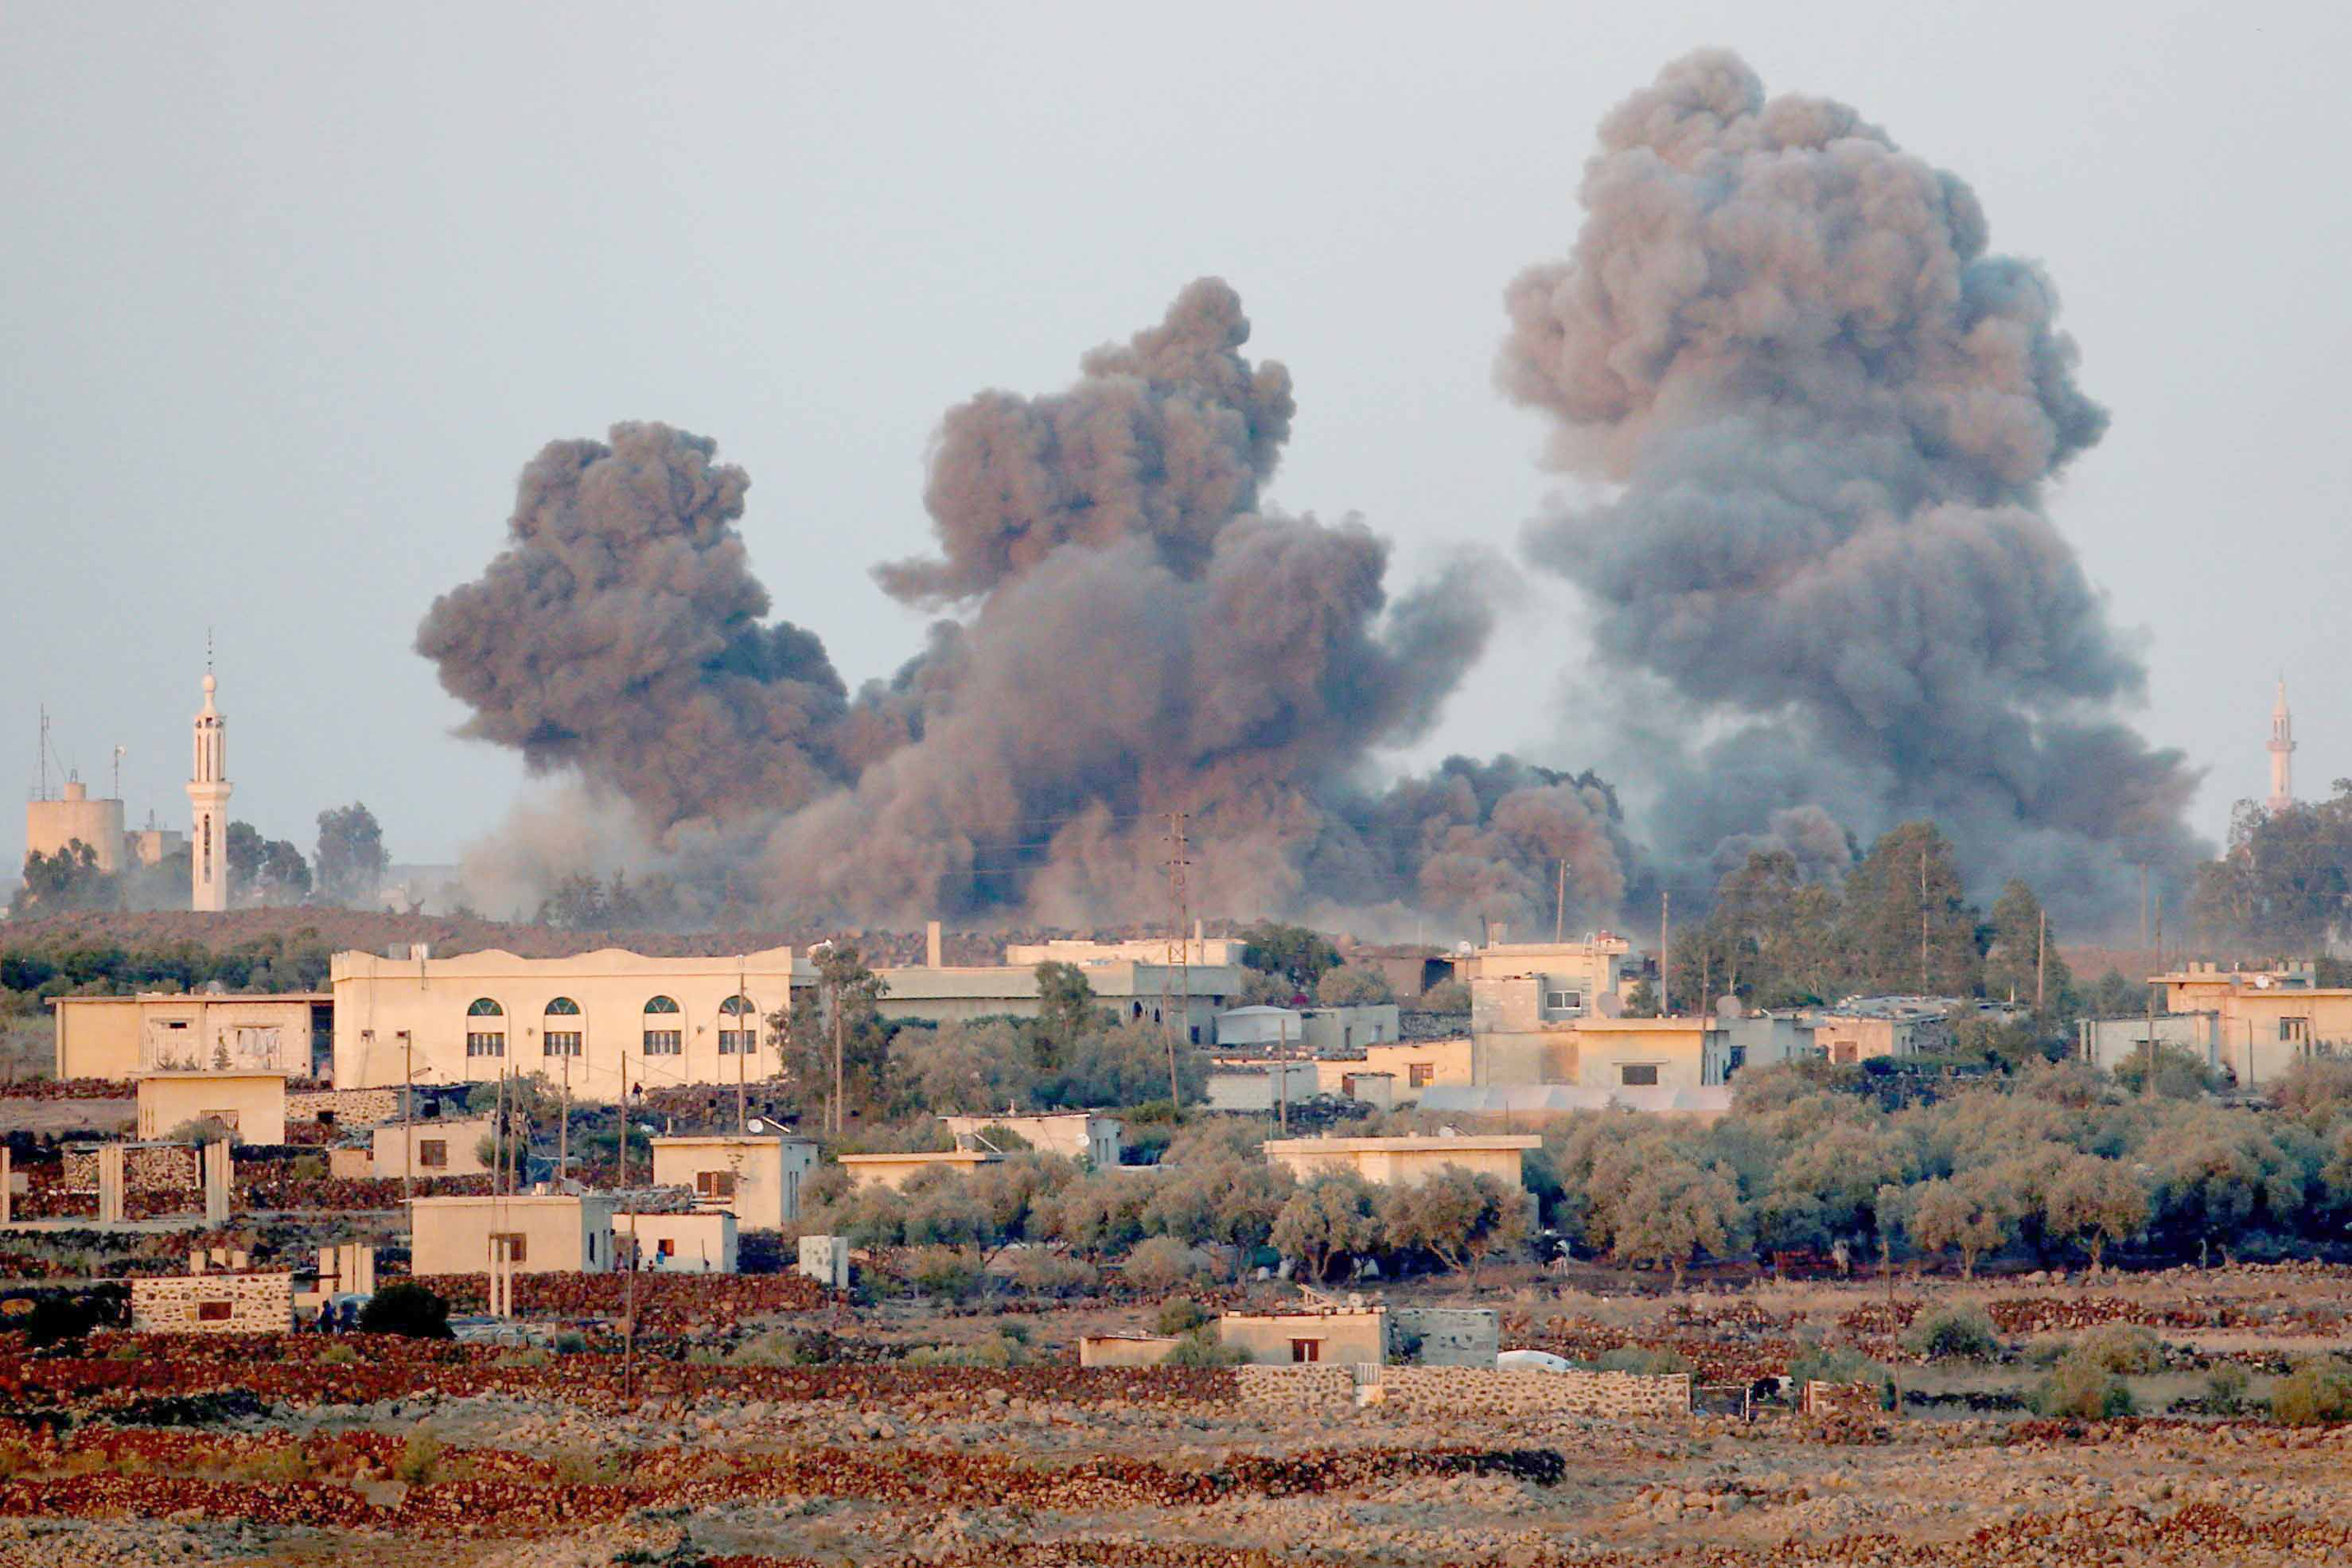 Smoke seen from an explosion at the Syrian side of the Israeli-Syrian border. (Reuters)